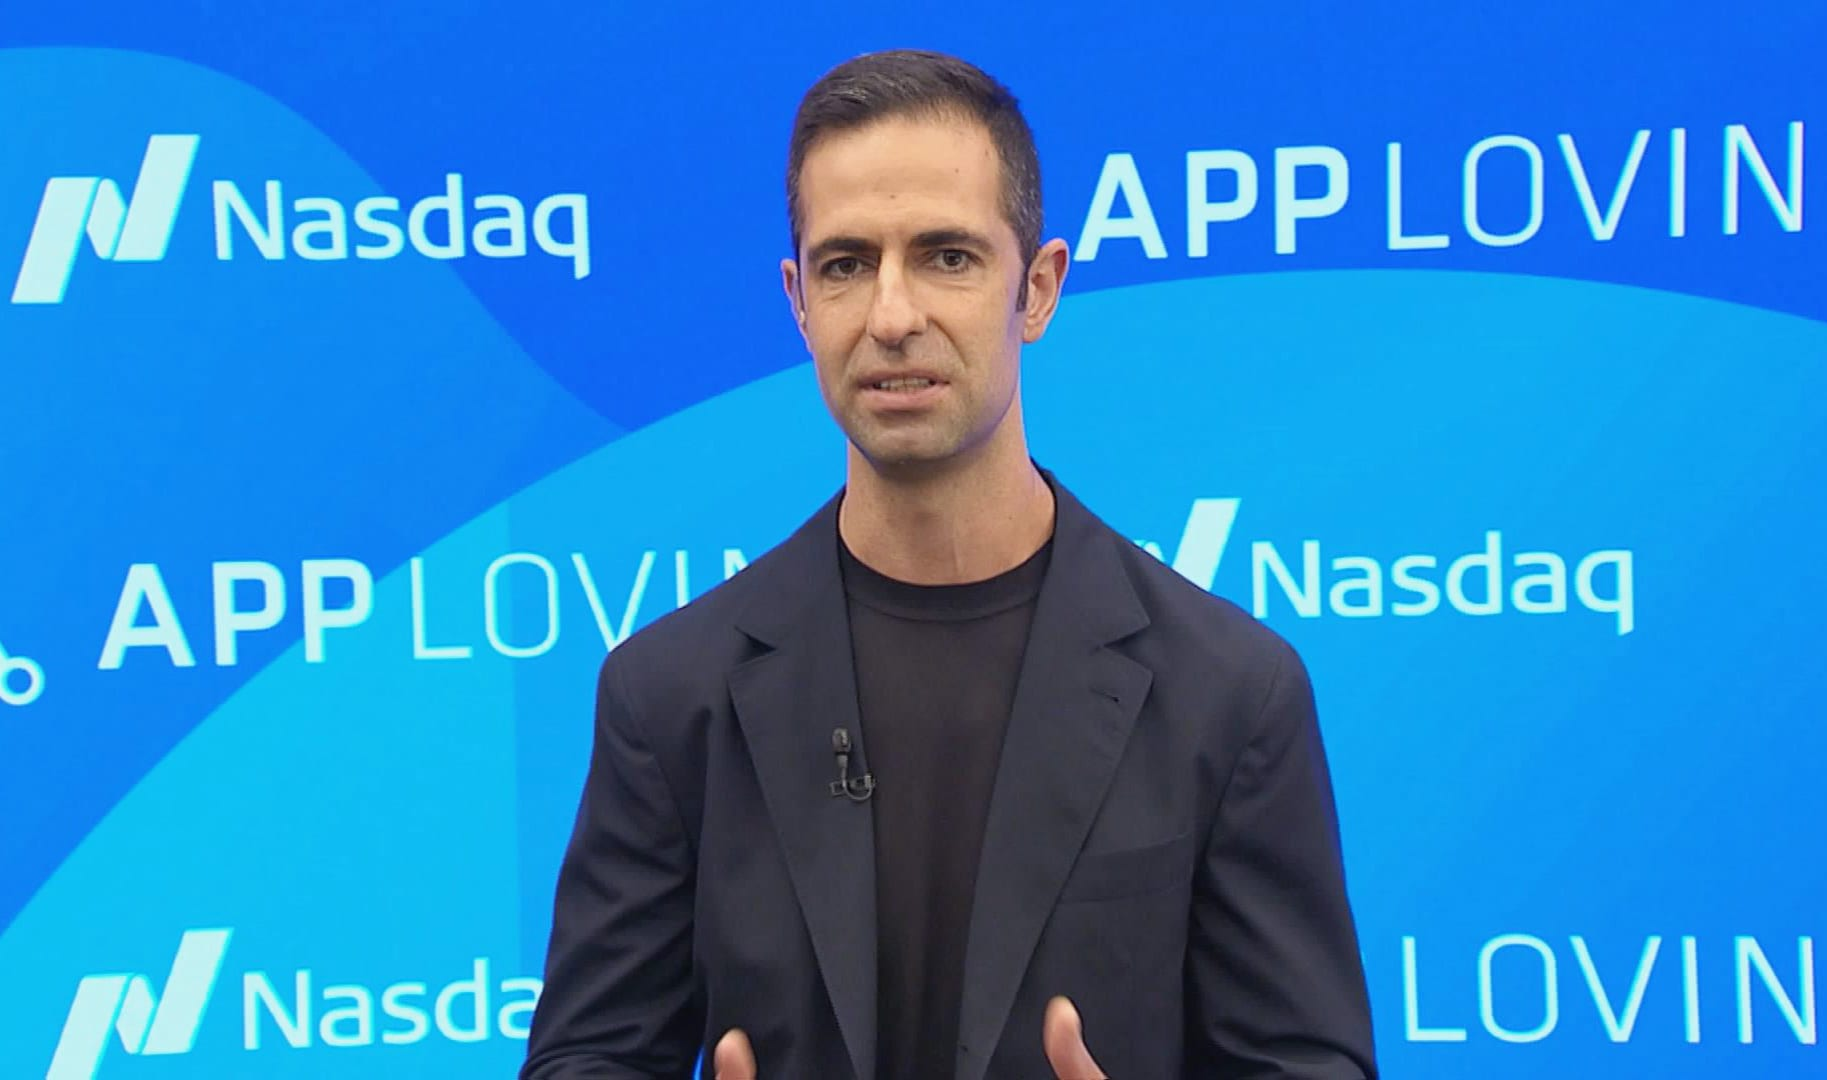 KKR-backed mobile gaming company AppLovin closes down 18.5% on its first day of trading, after raising $2B in its IPO at a valuation of $28.6B (Megan Graham/CNBC)